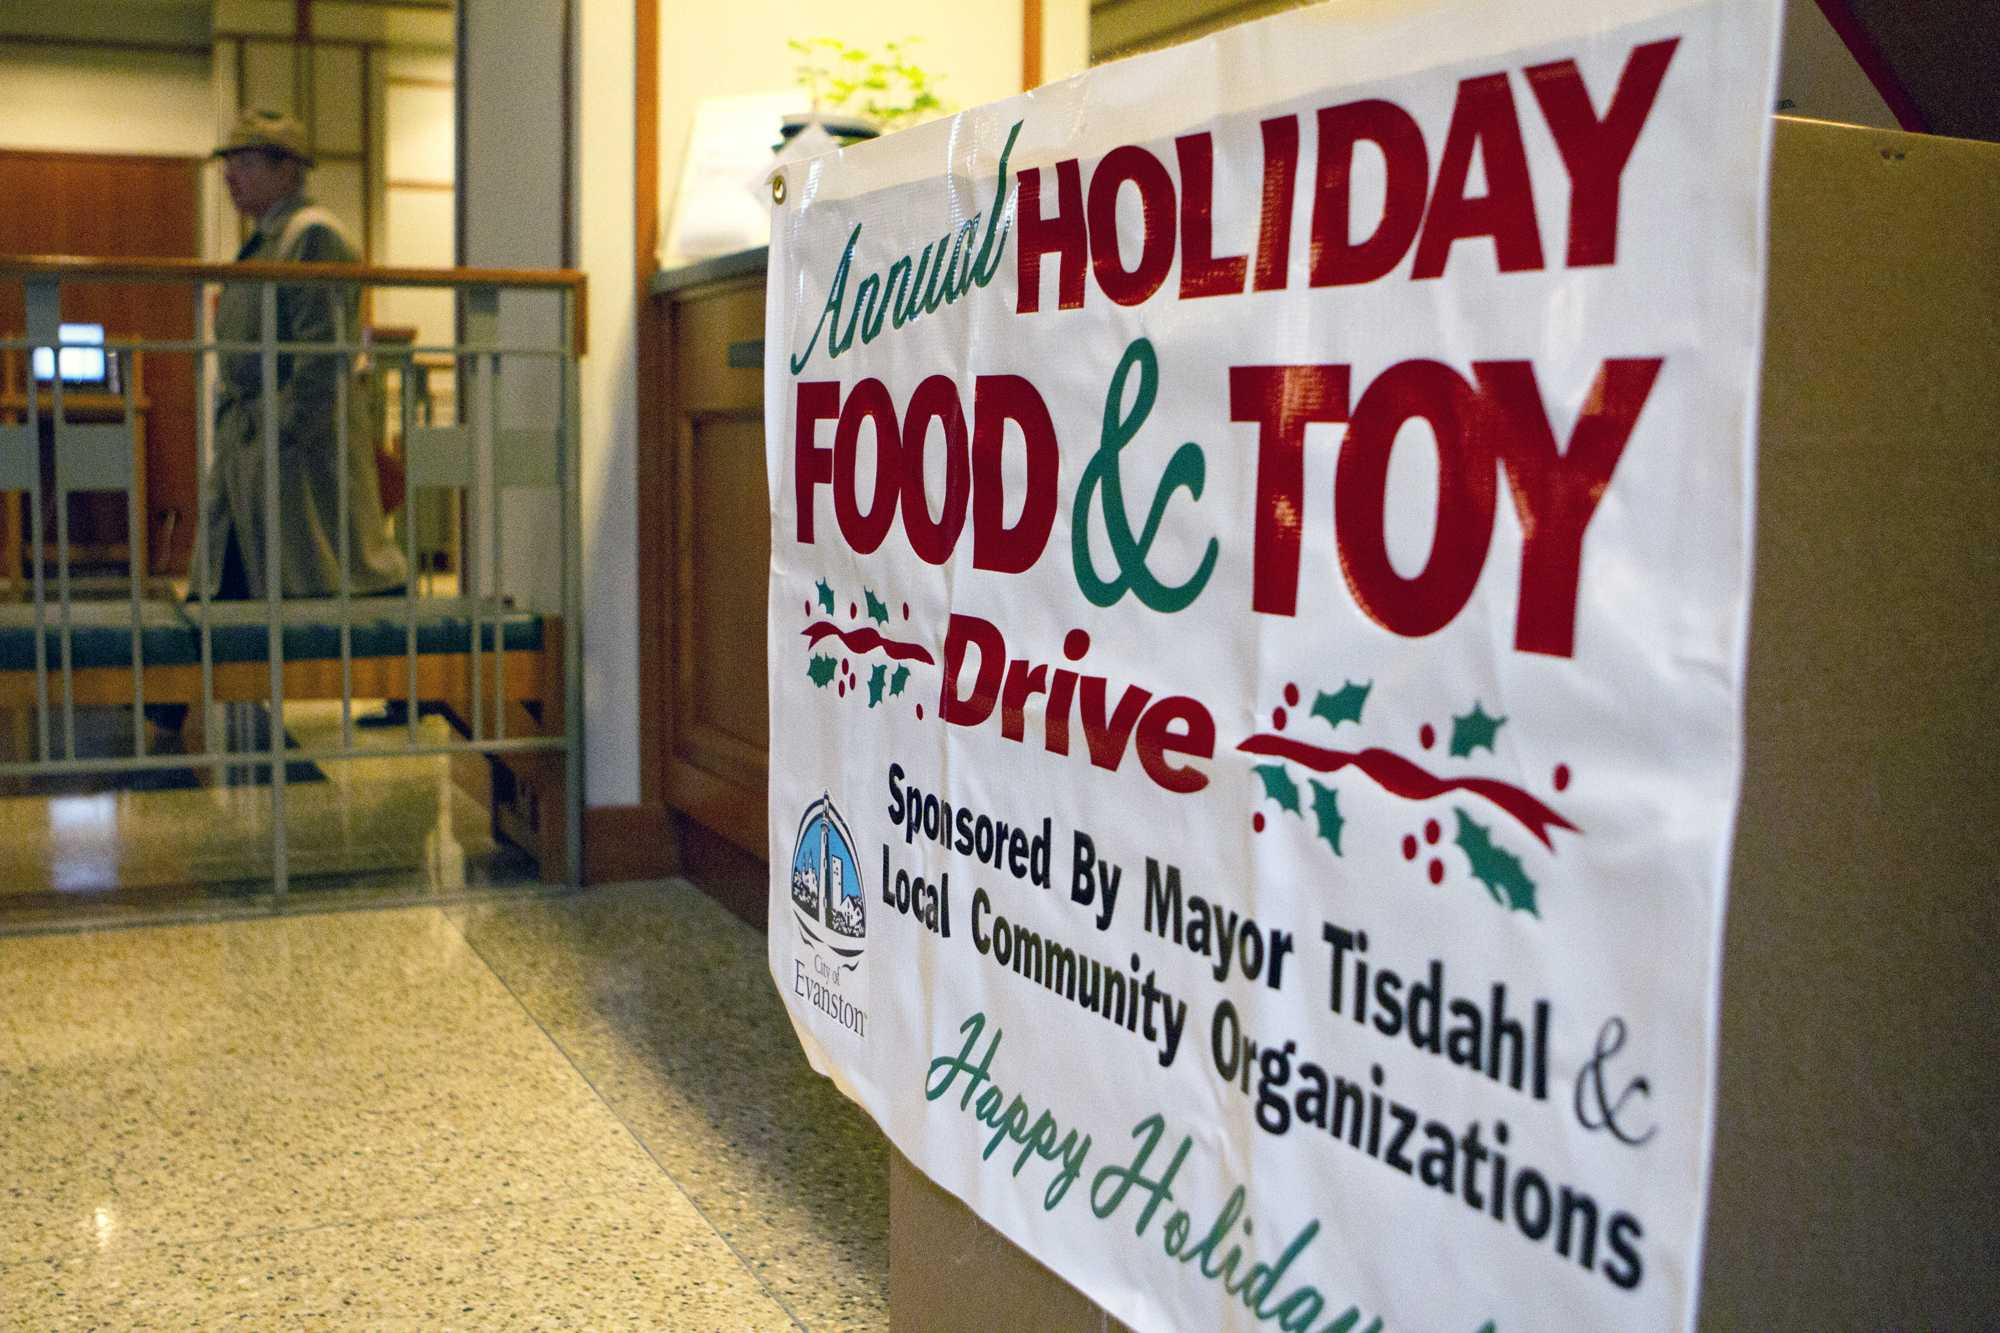 Evanston's annual Holiday Food and Toy Drive, sponsored by the city and local community organizations, has nine drop-off locations, including this spot at the Evanston Public Library on Orrington Avenue. Residents can bring new toys and non-perishable food items to the different drop-off sites or make donations online through Dec. 14.